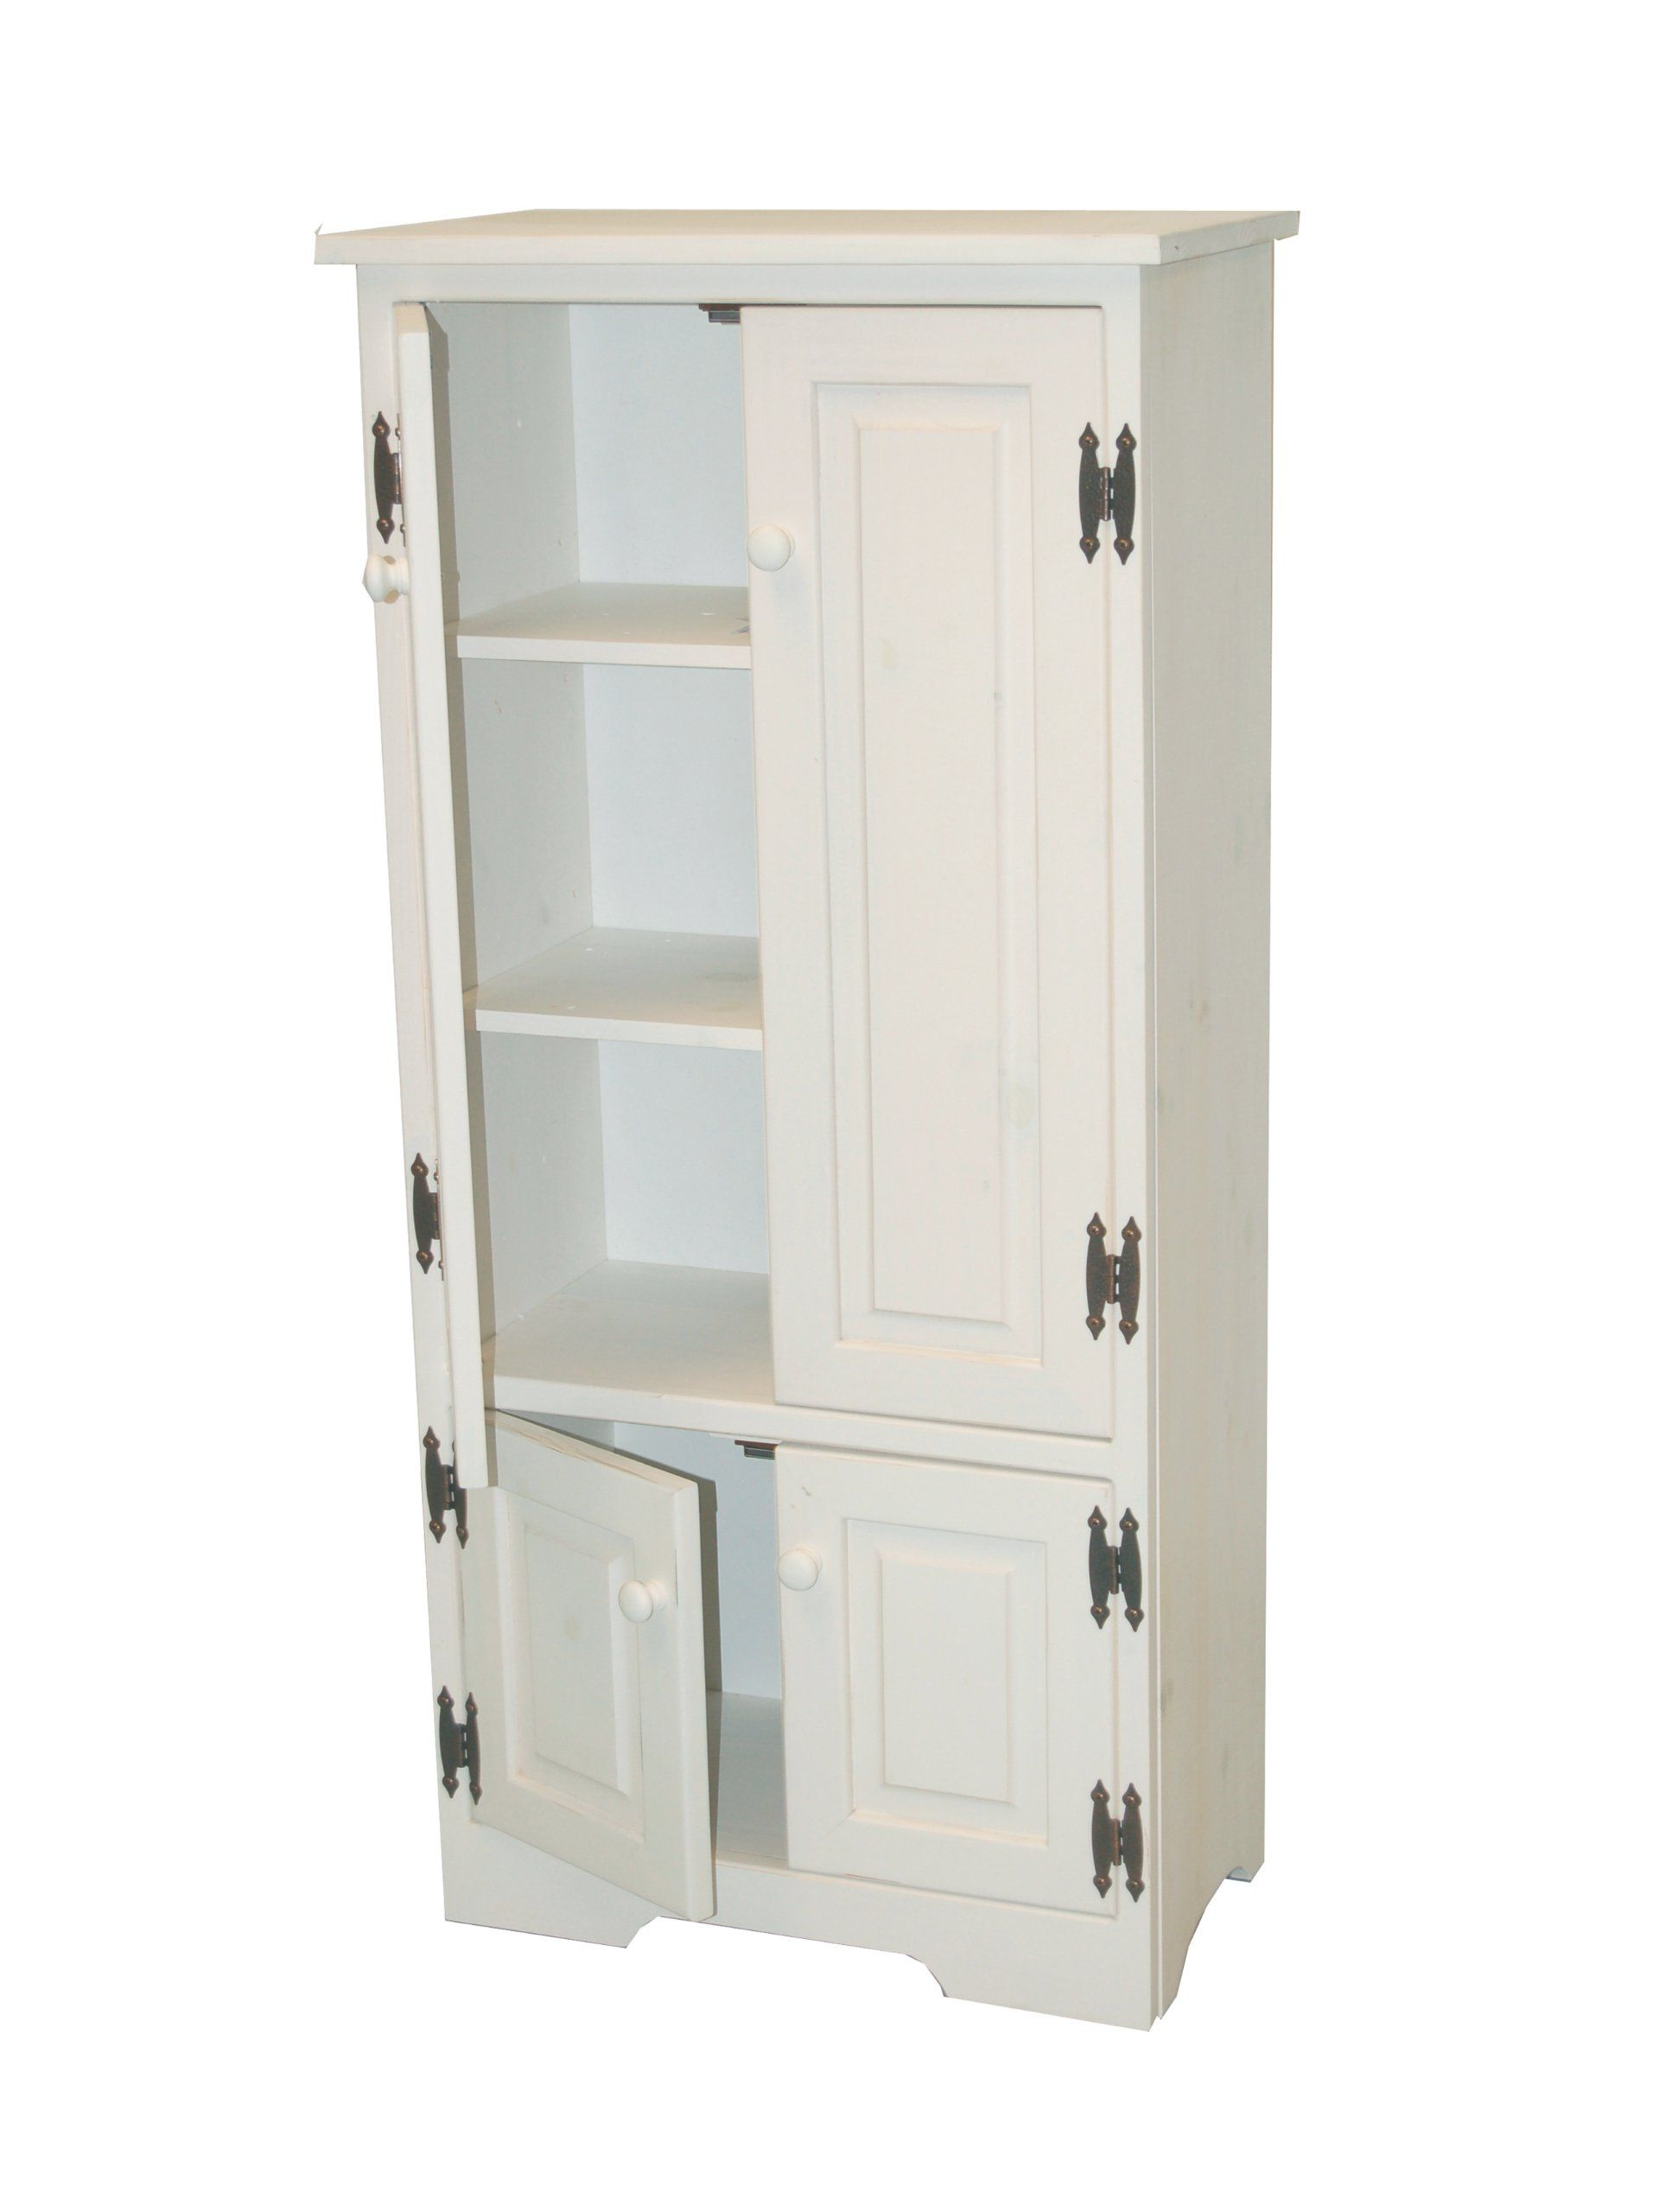 Amazon Com Tms Tall Cabinet White Free Standing Cabinets Tall Cabinet Storage Kitchen Cabinet Storage Pantry Storage Cabinet